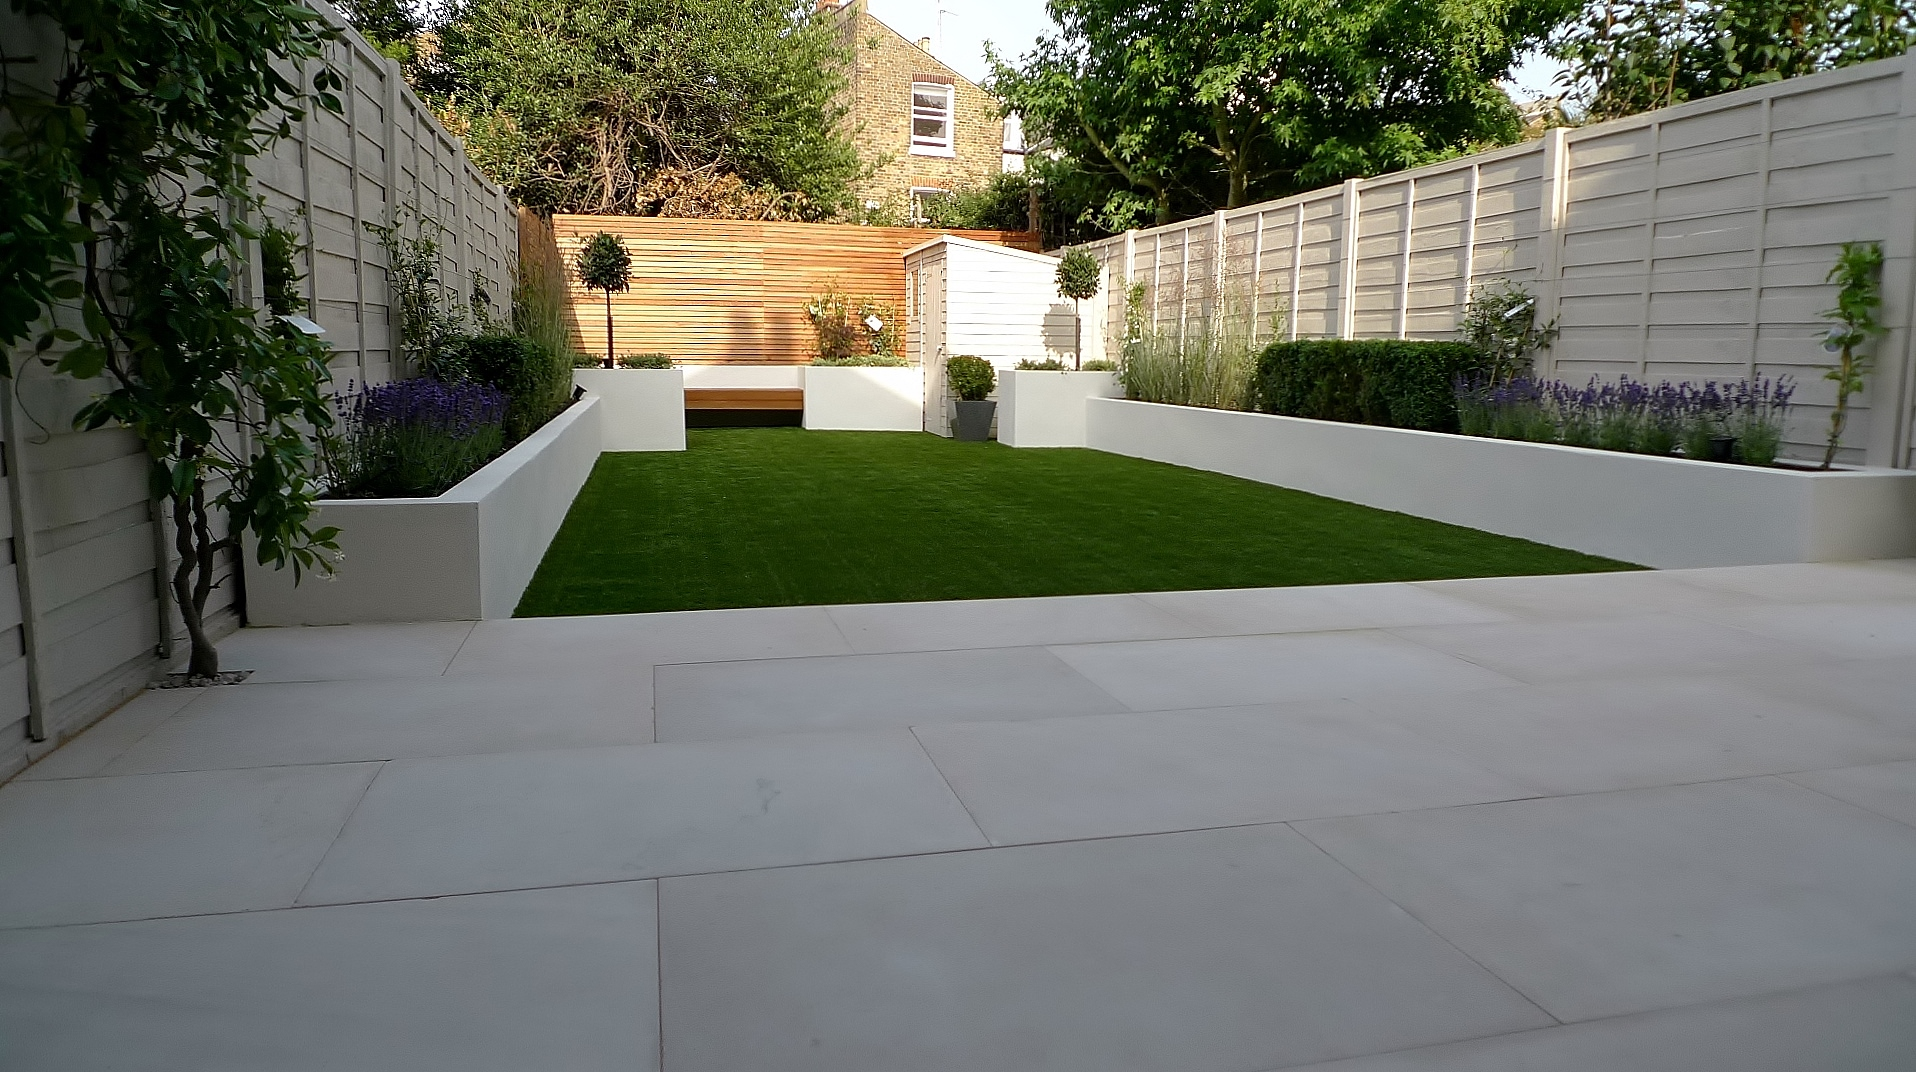 Anewgarden london garden blog for Small garden design plans